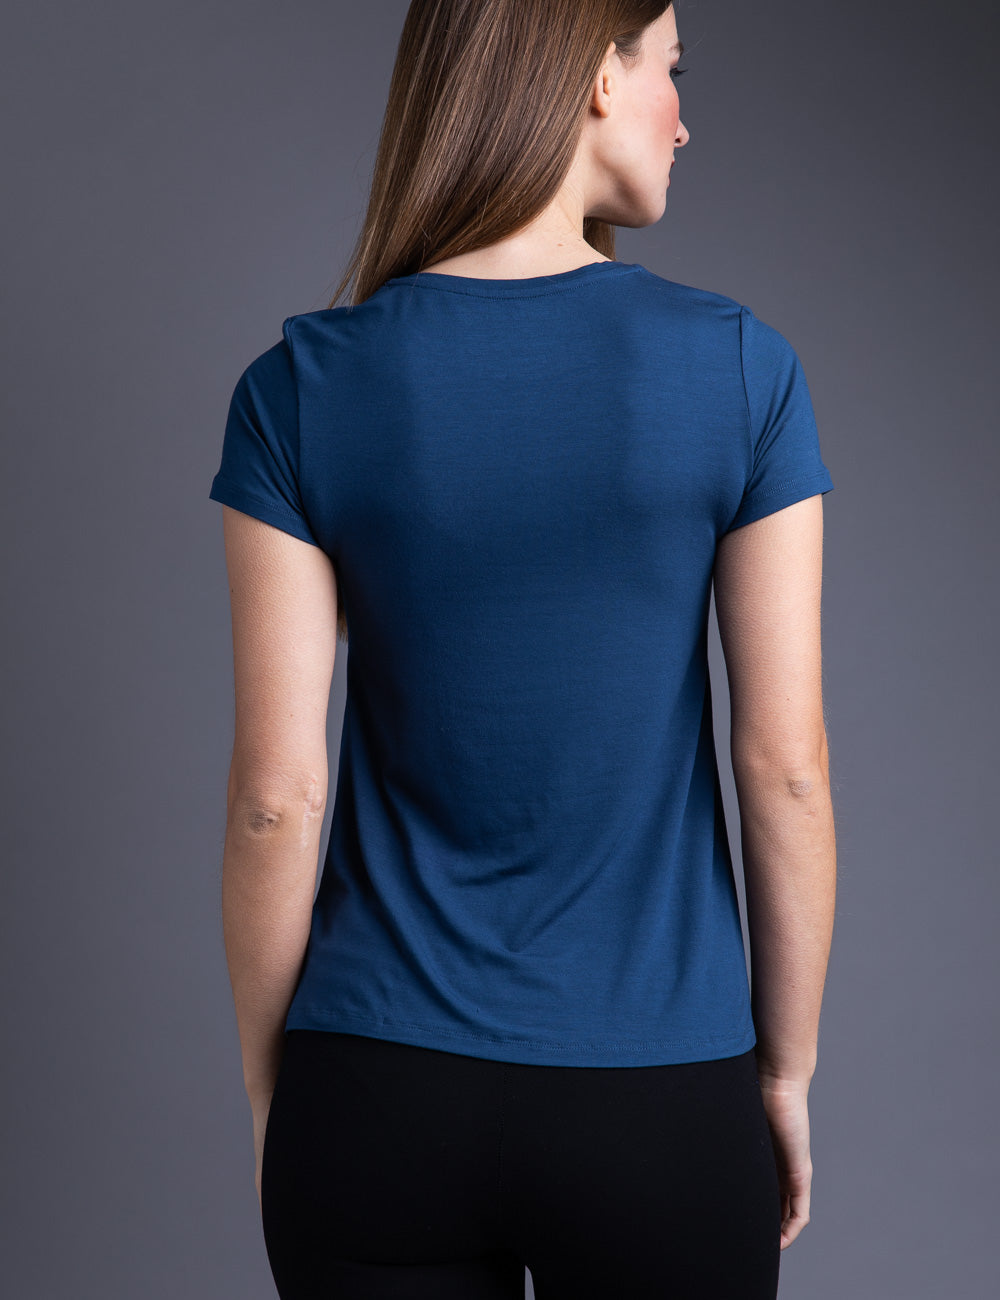 Majestic Short Sleeve A- Line Crewneck Tee in Bleu Nuit